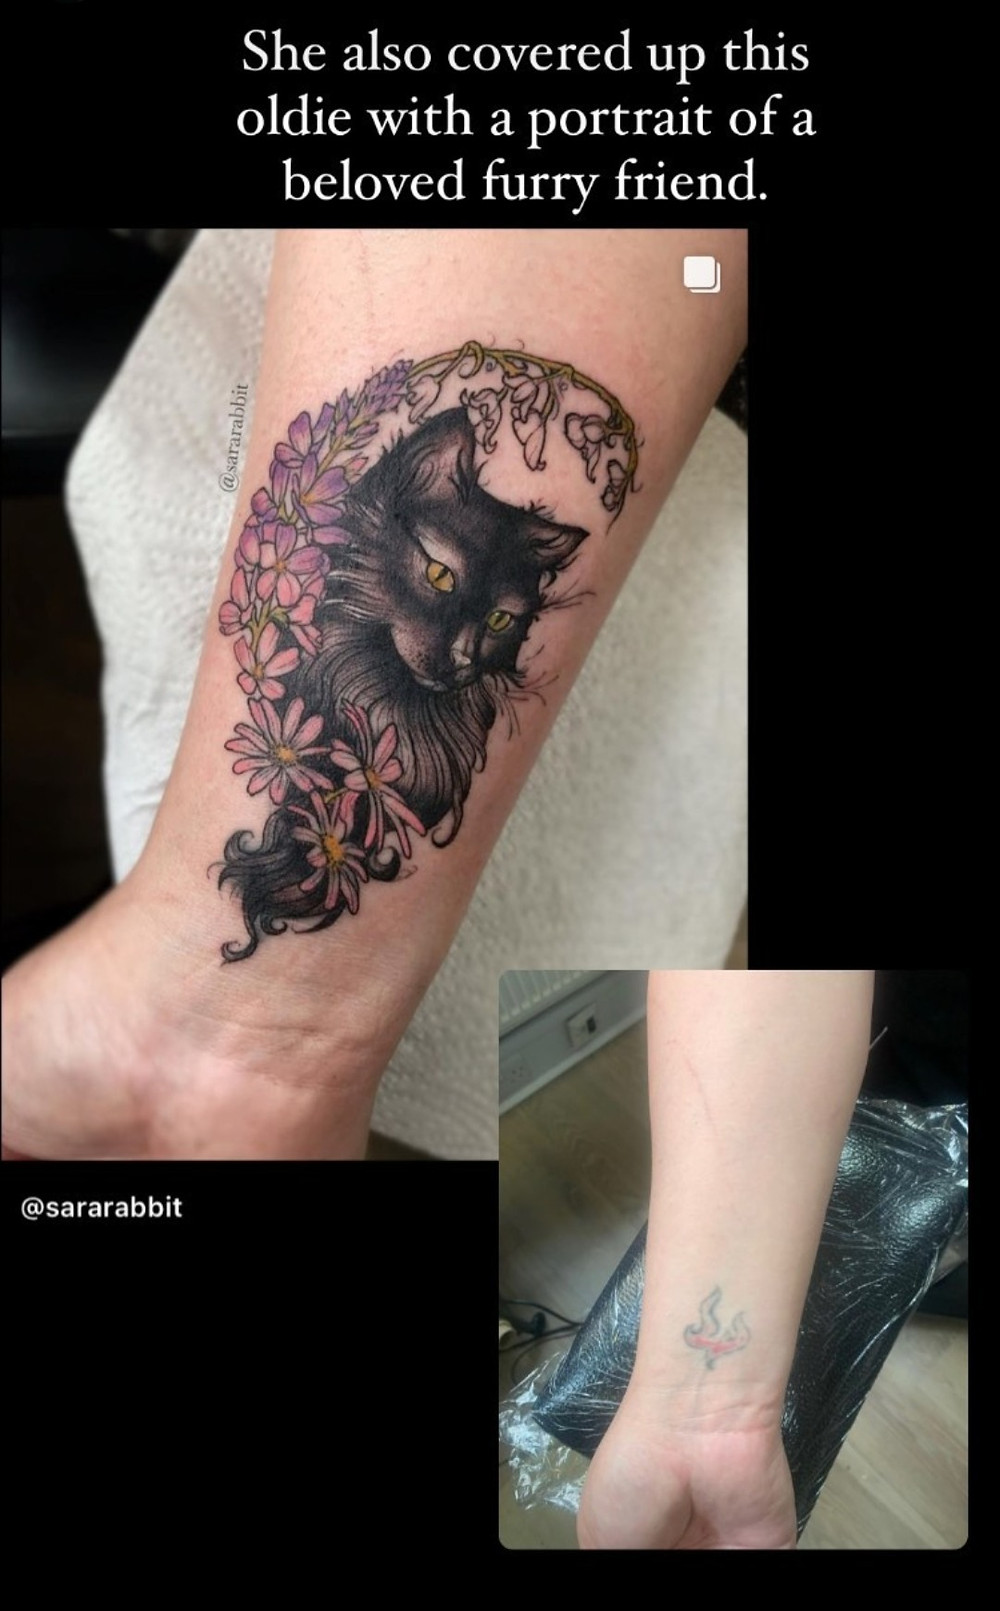 Sara Gallacher cover up tattoo in Glasgow